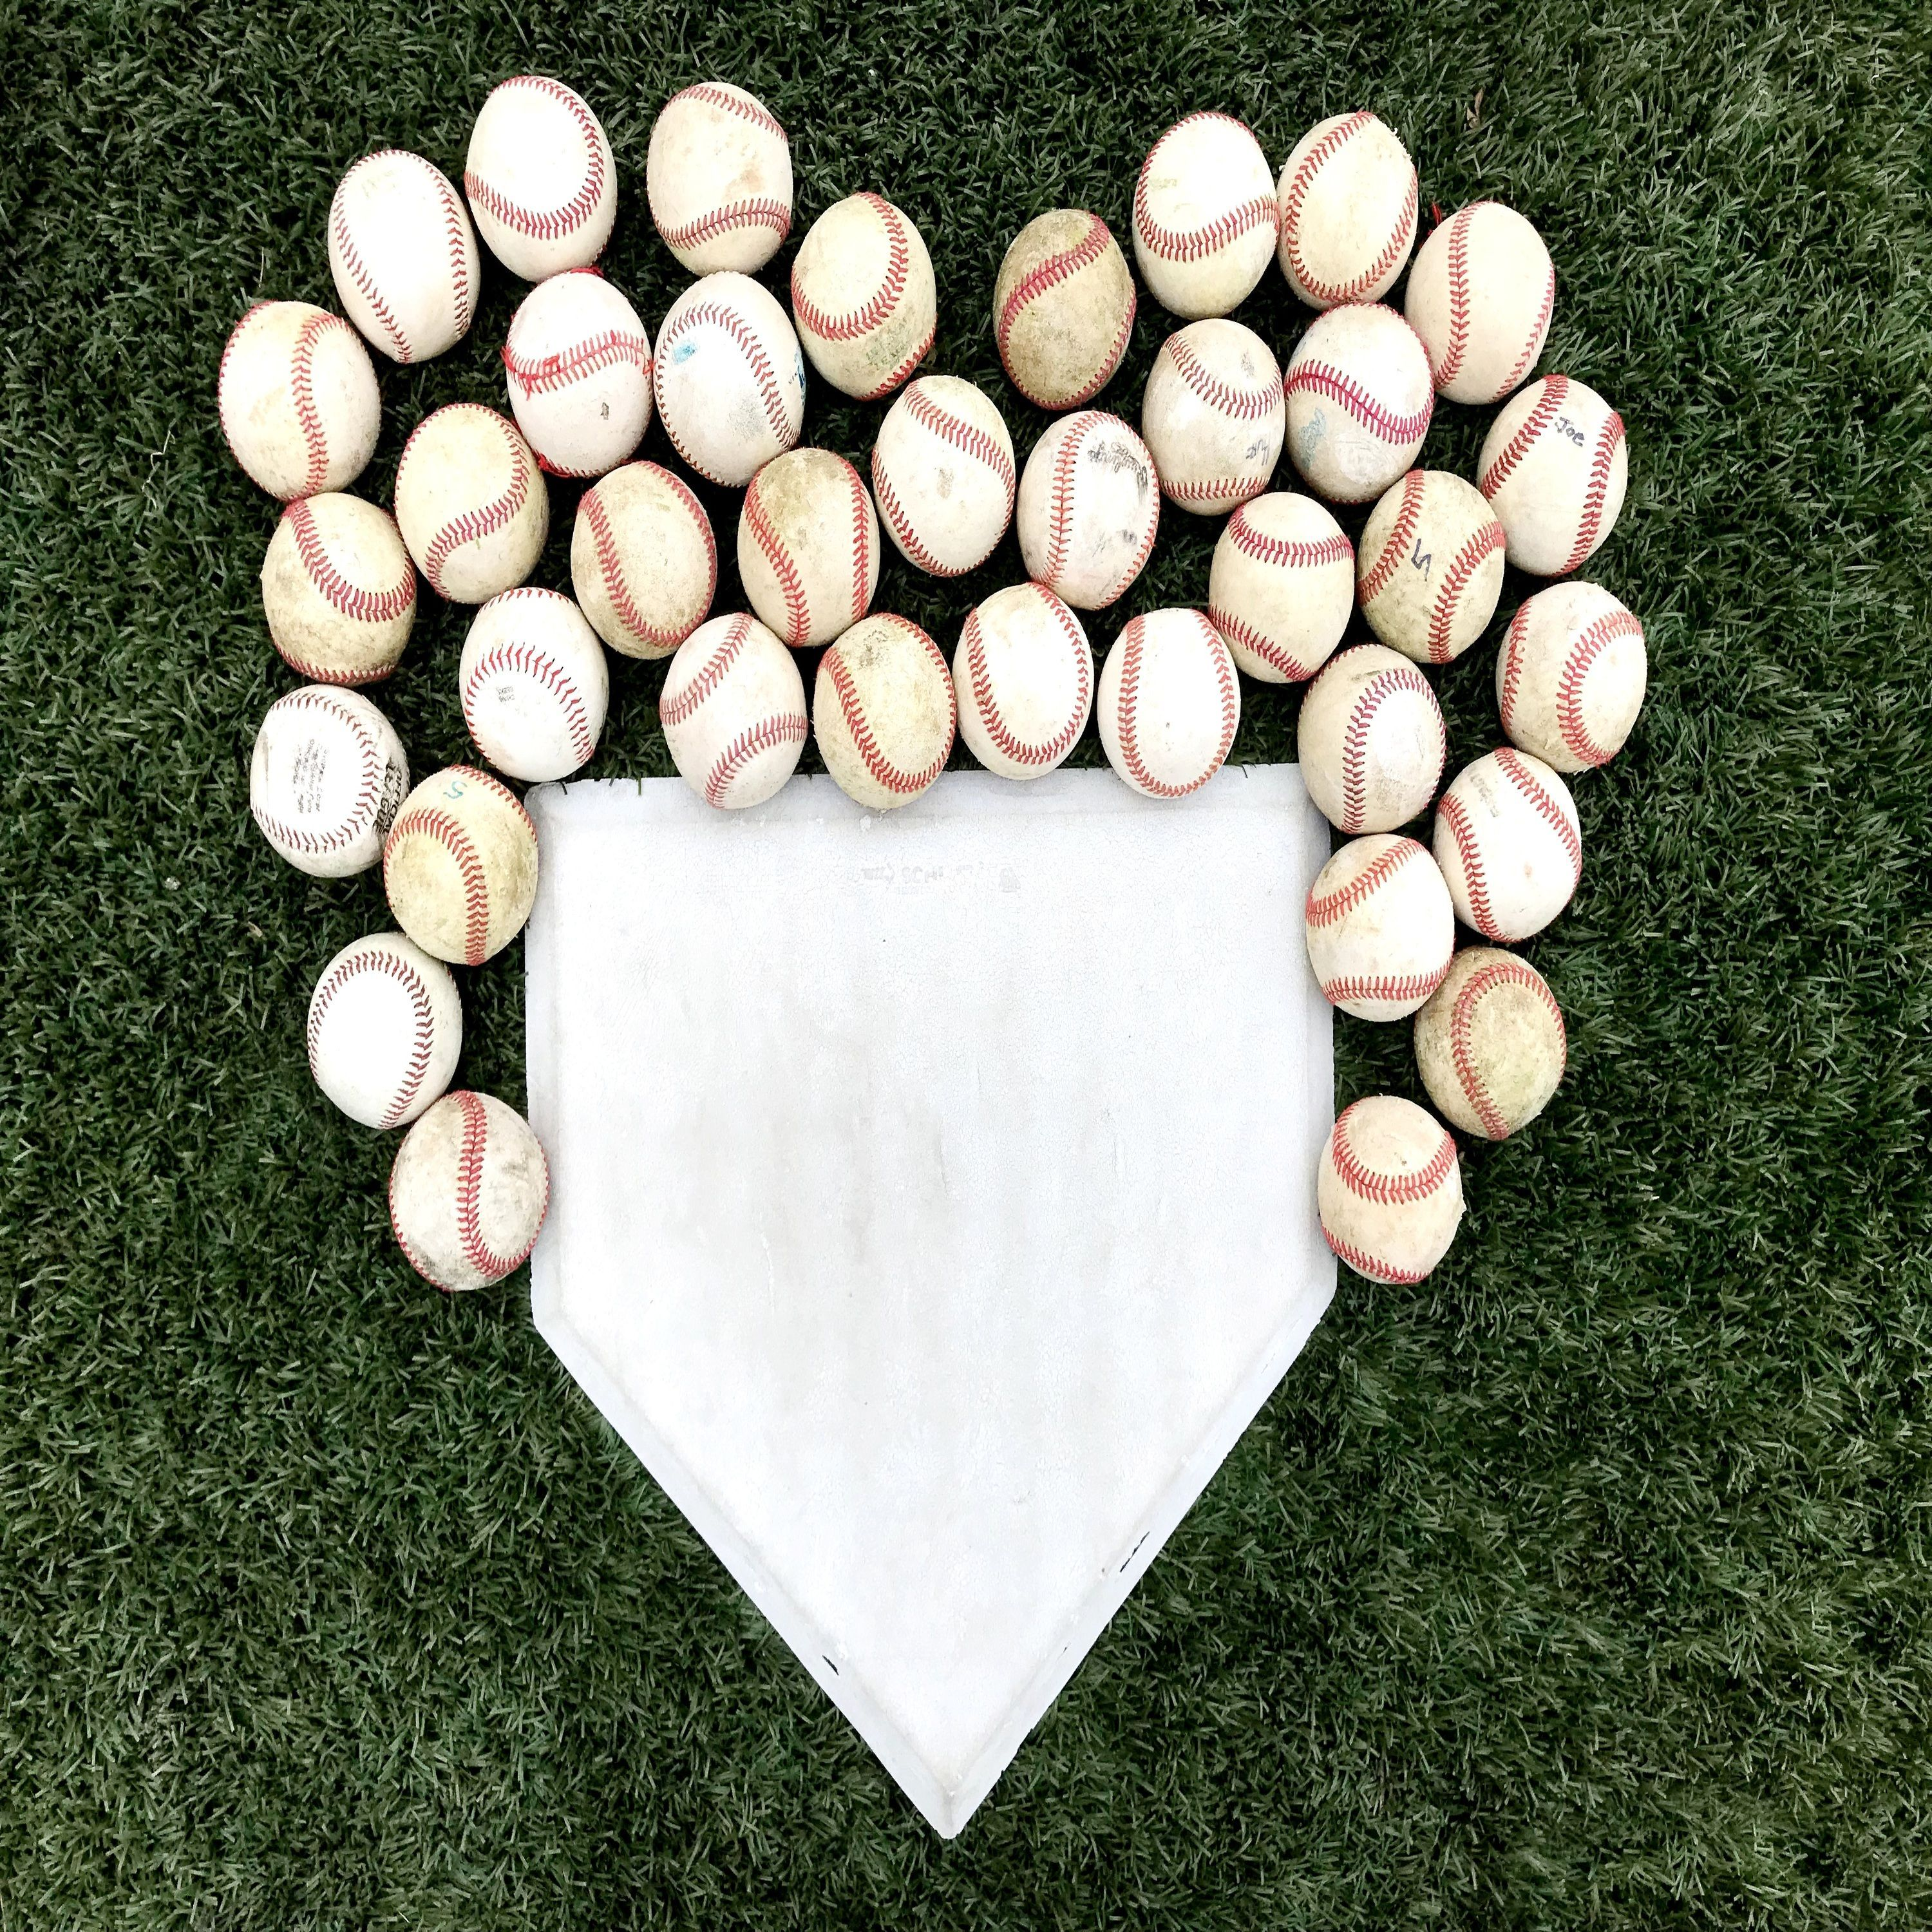 For Love of the Game- 8/23/18